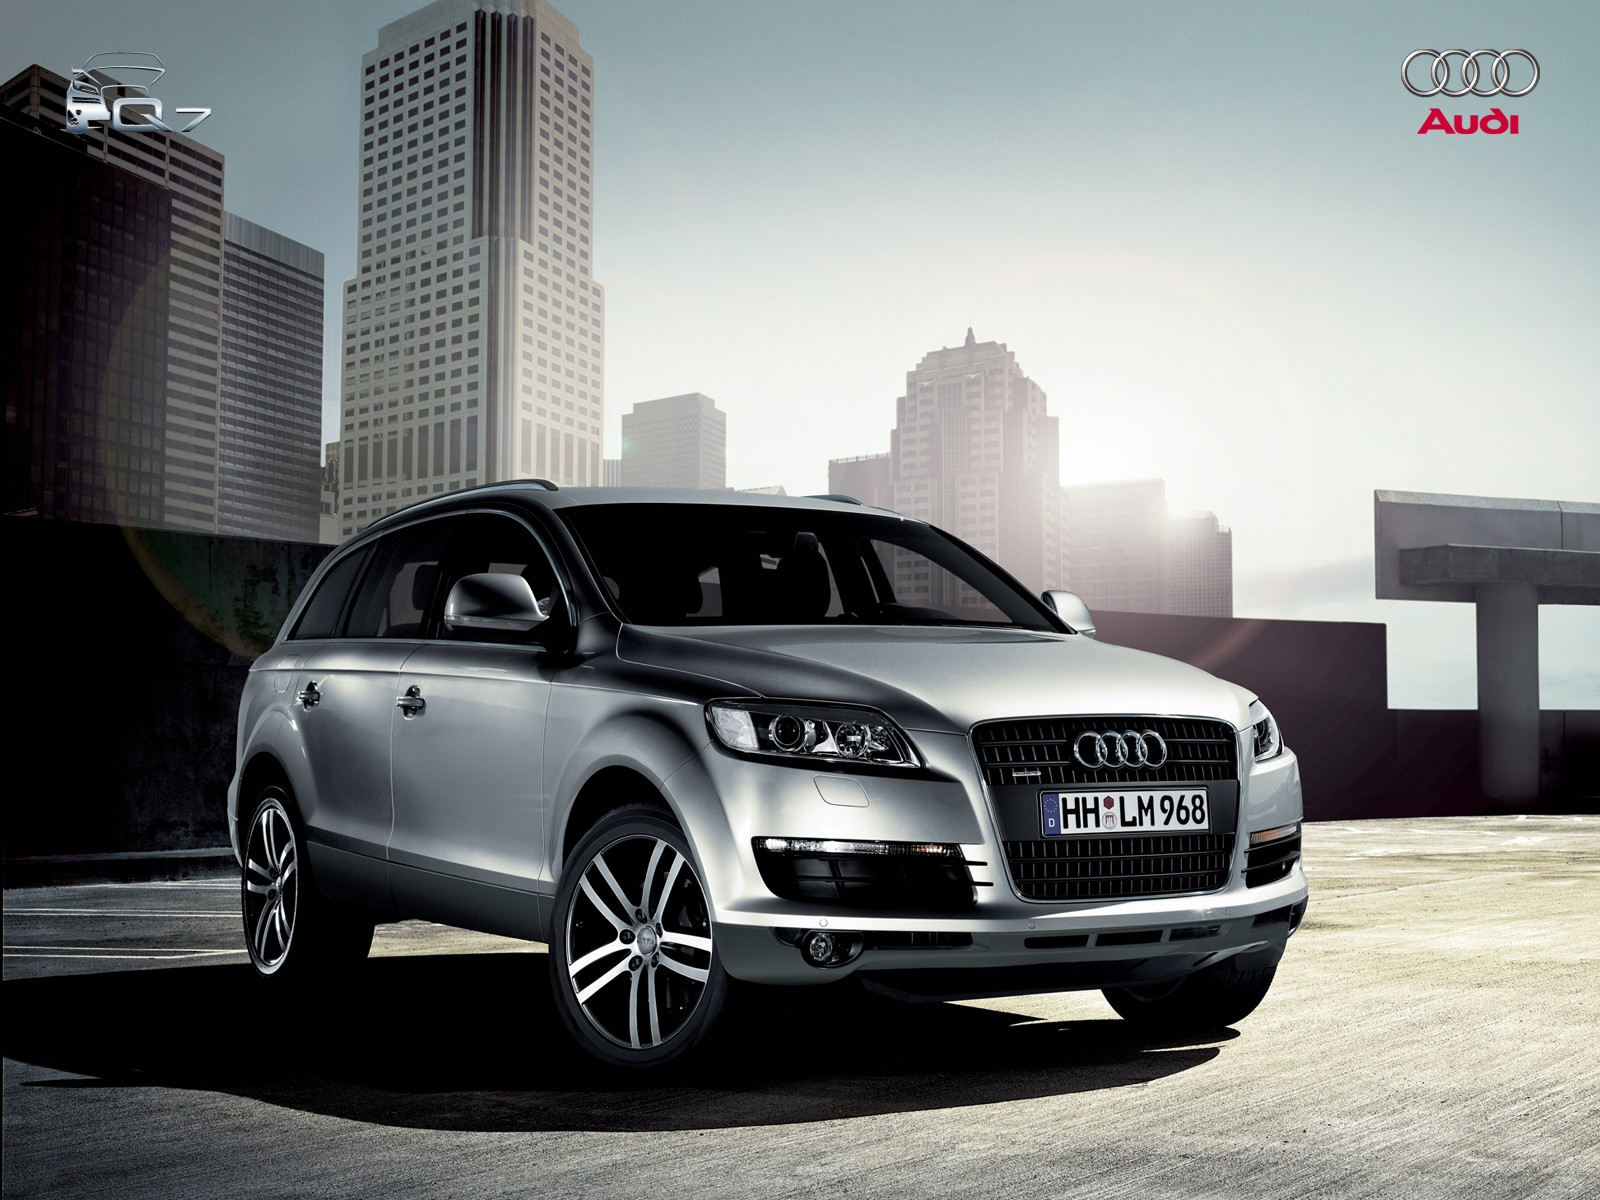 Marvelous HD Audi Car Wallpapers